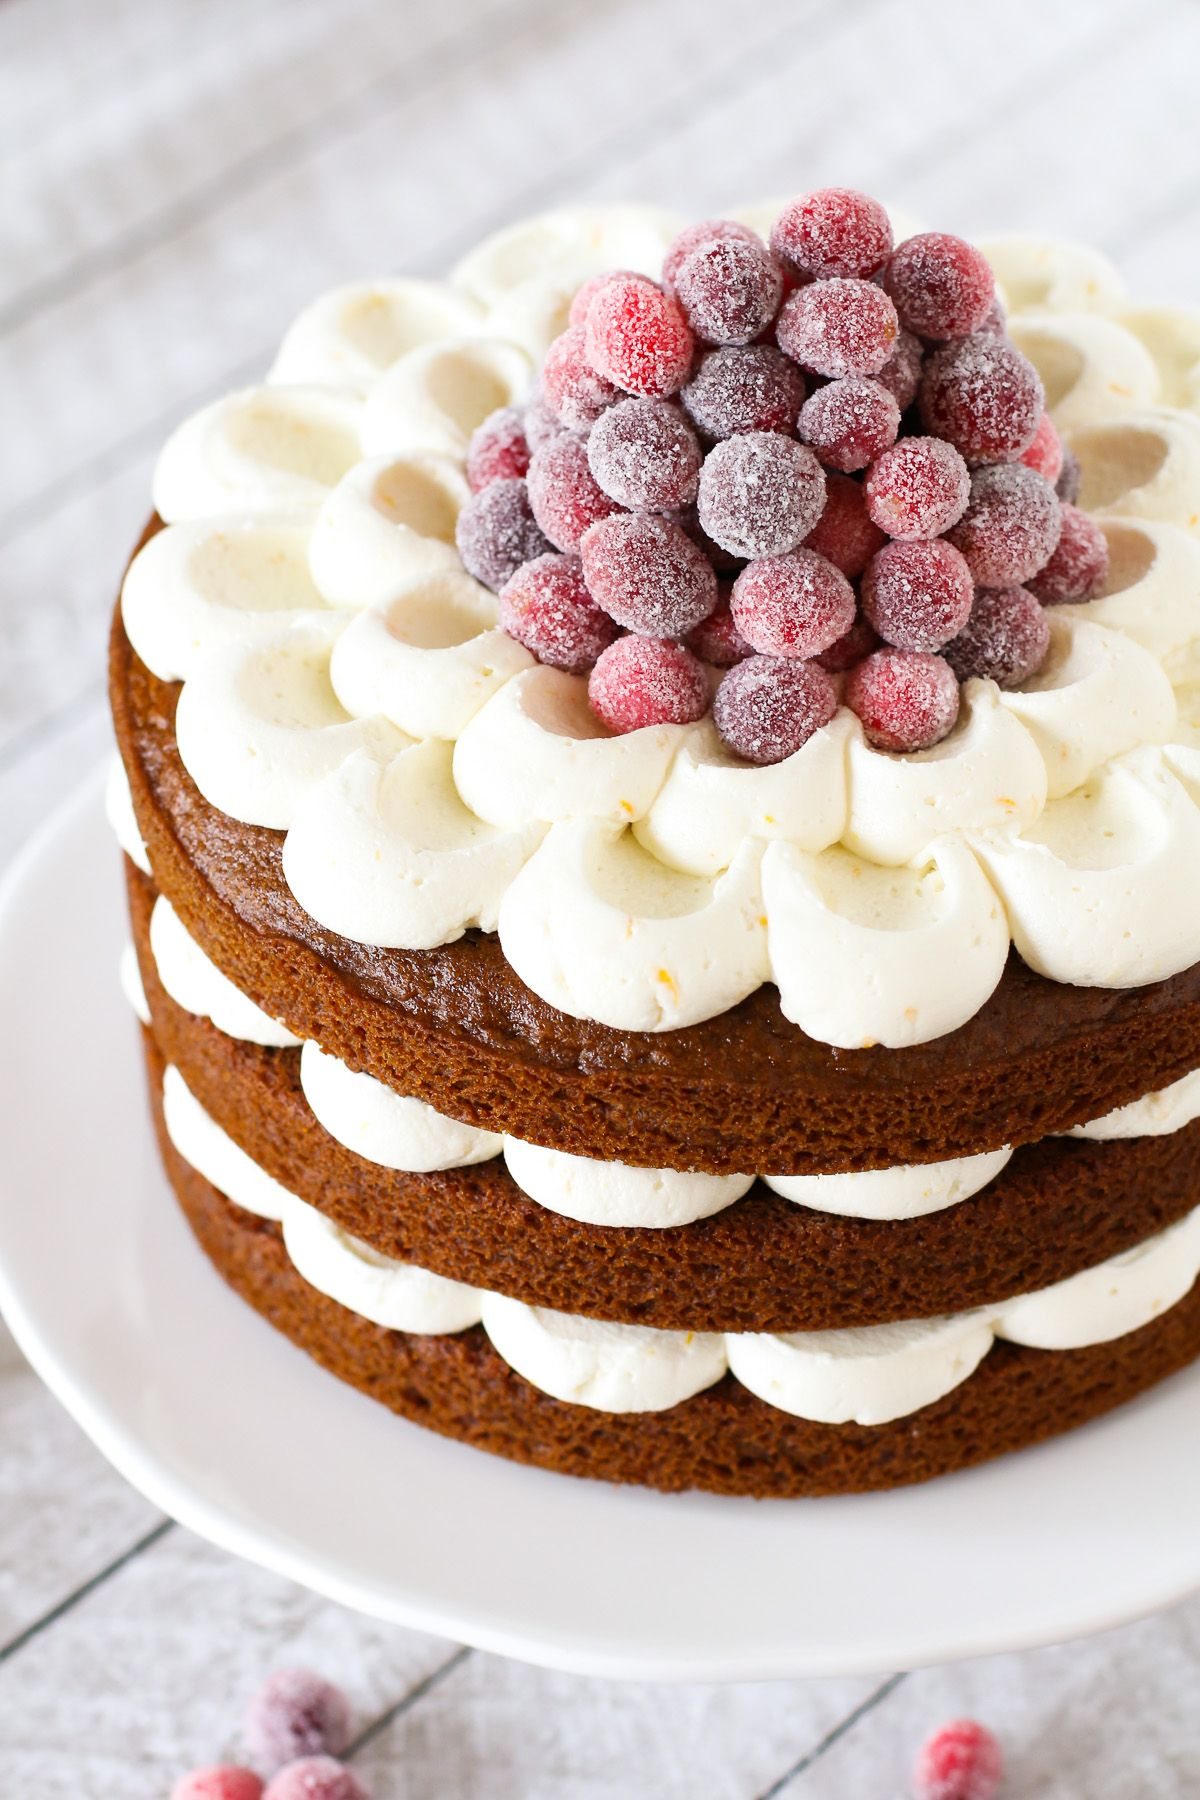 Gluten Free Vegan Gingerbread Layer Cake With Sugared Cranberries